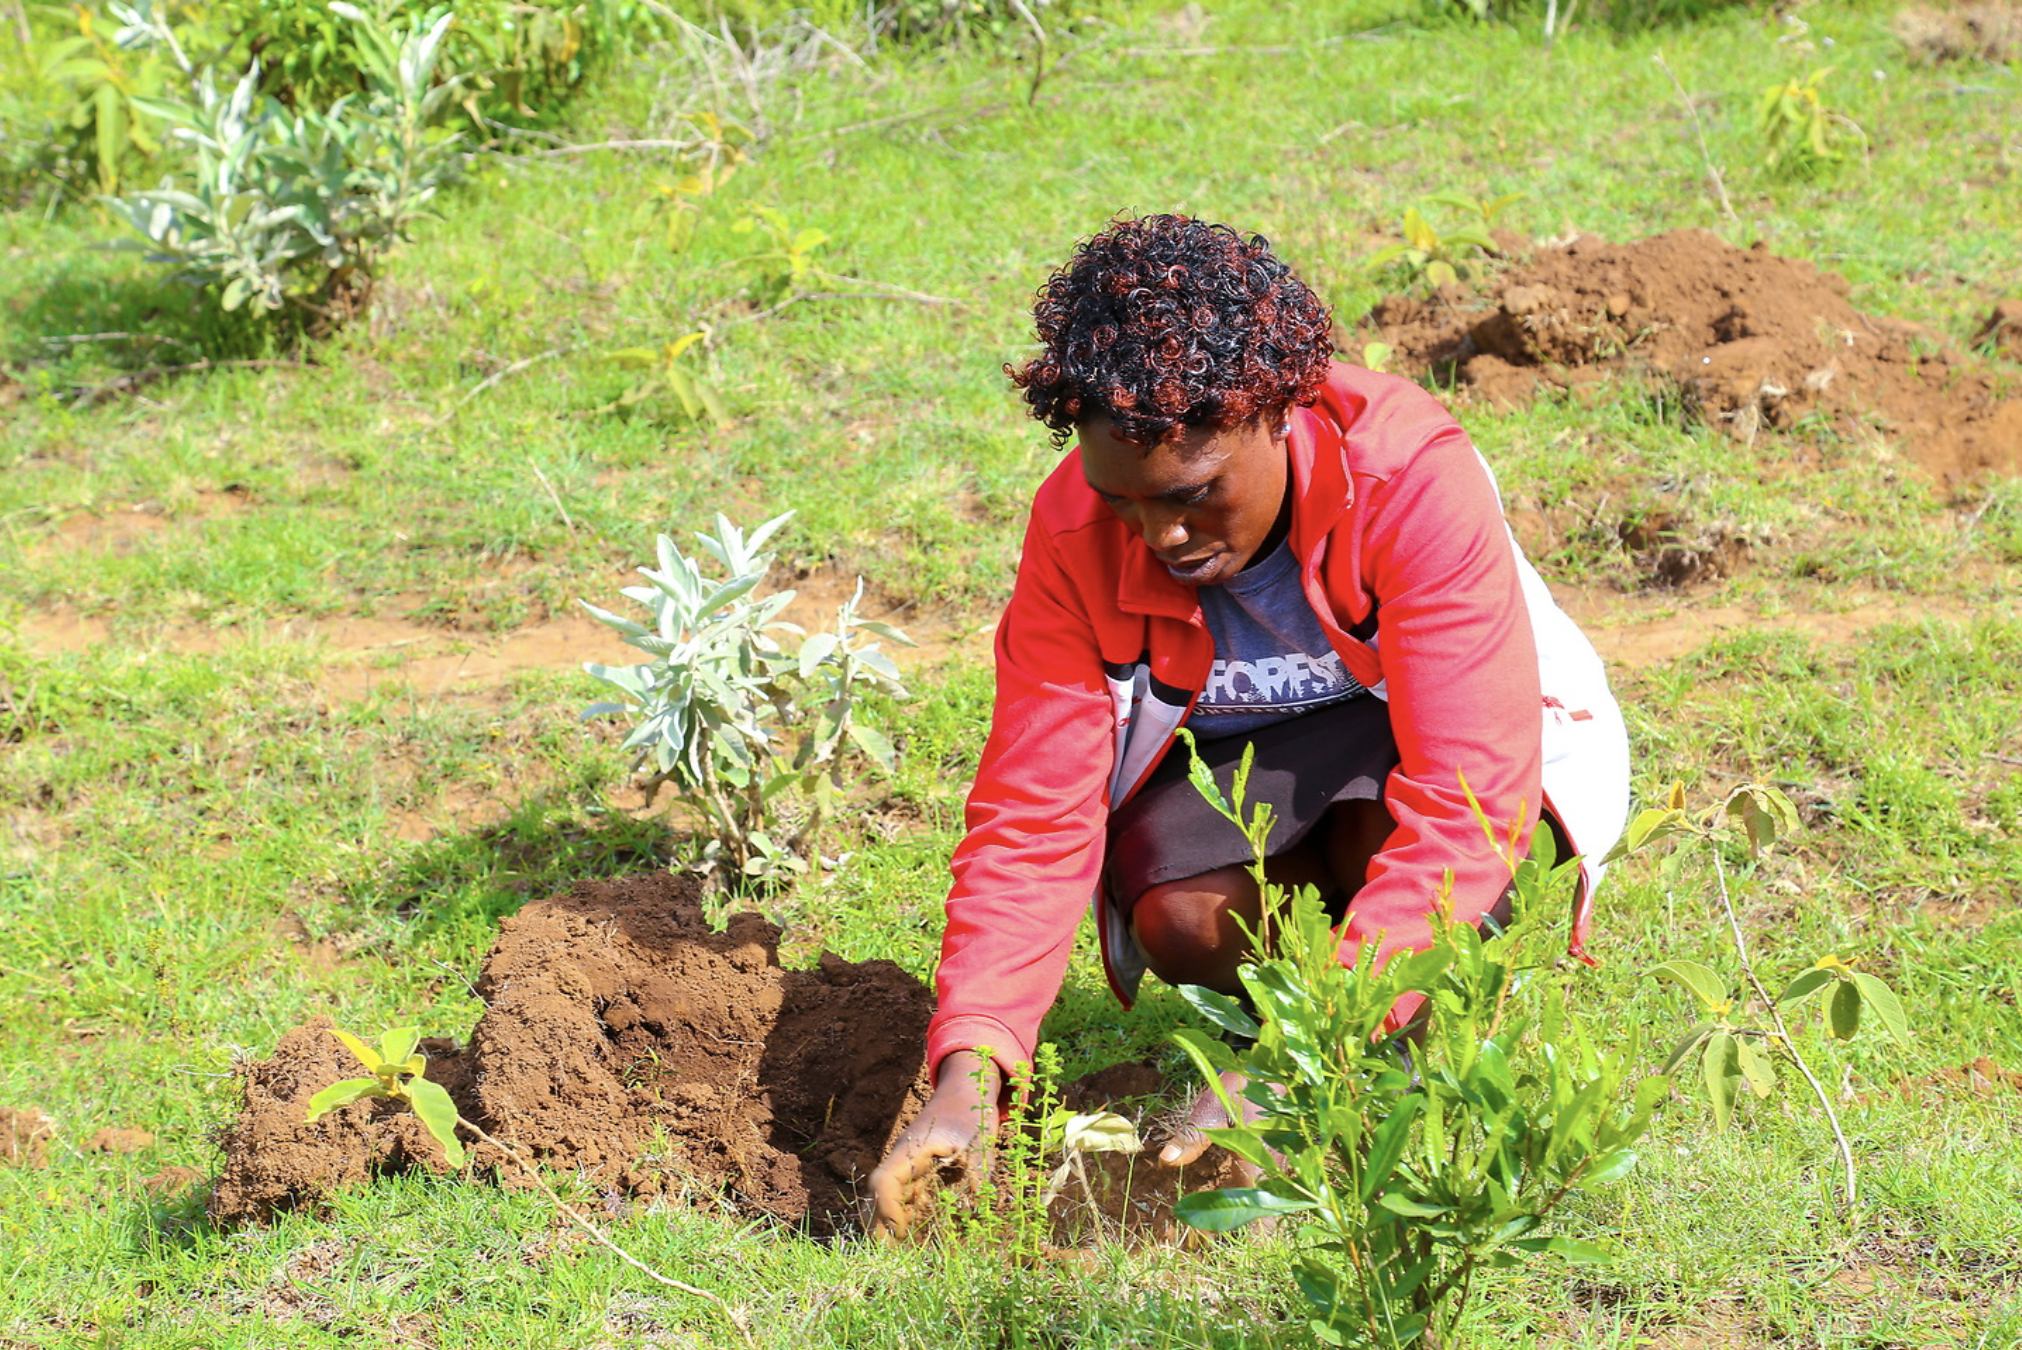 woman in red jacket planting a tree